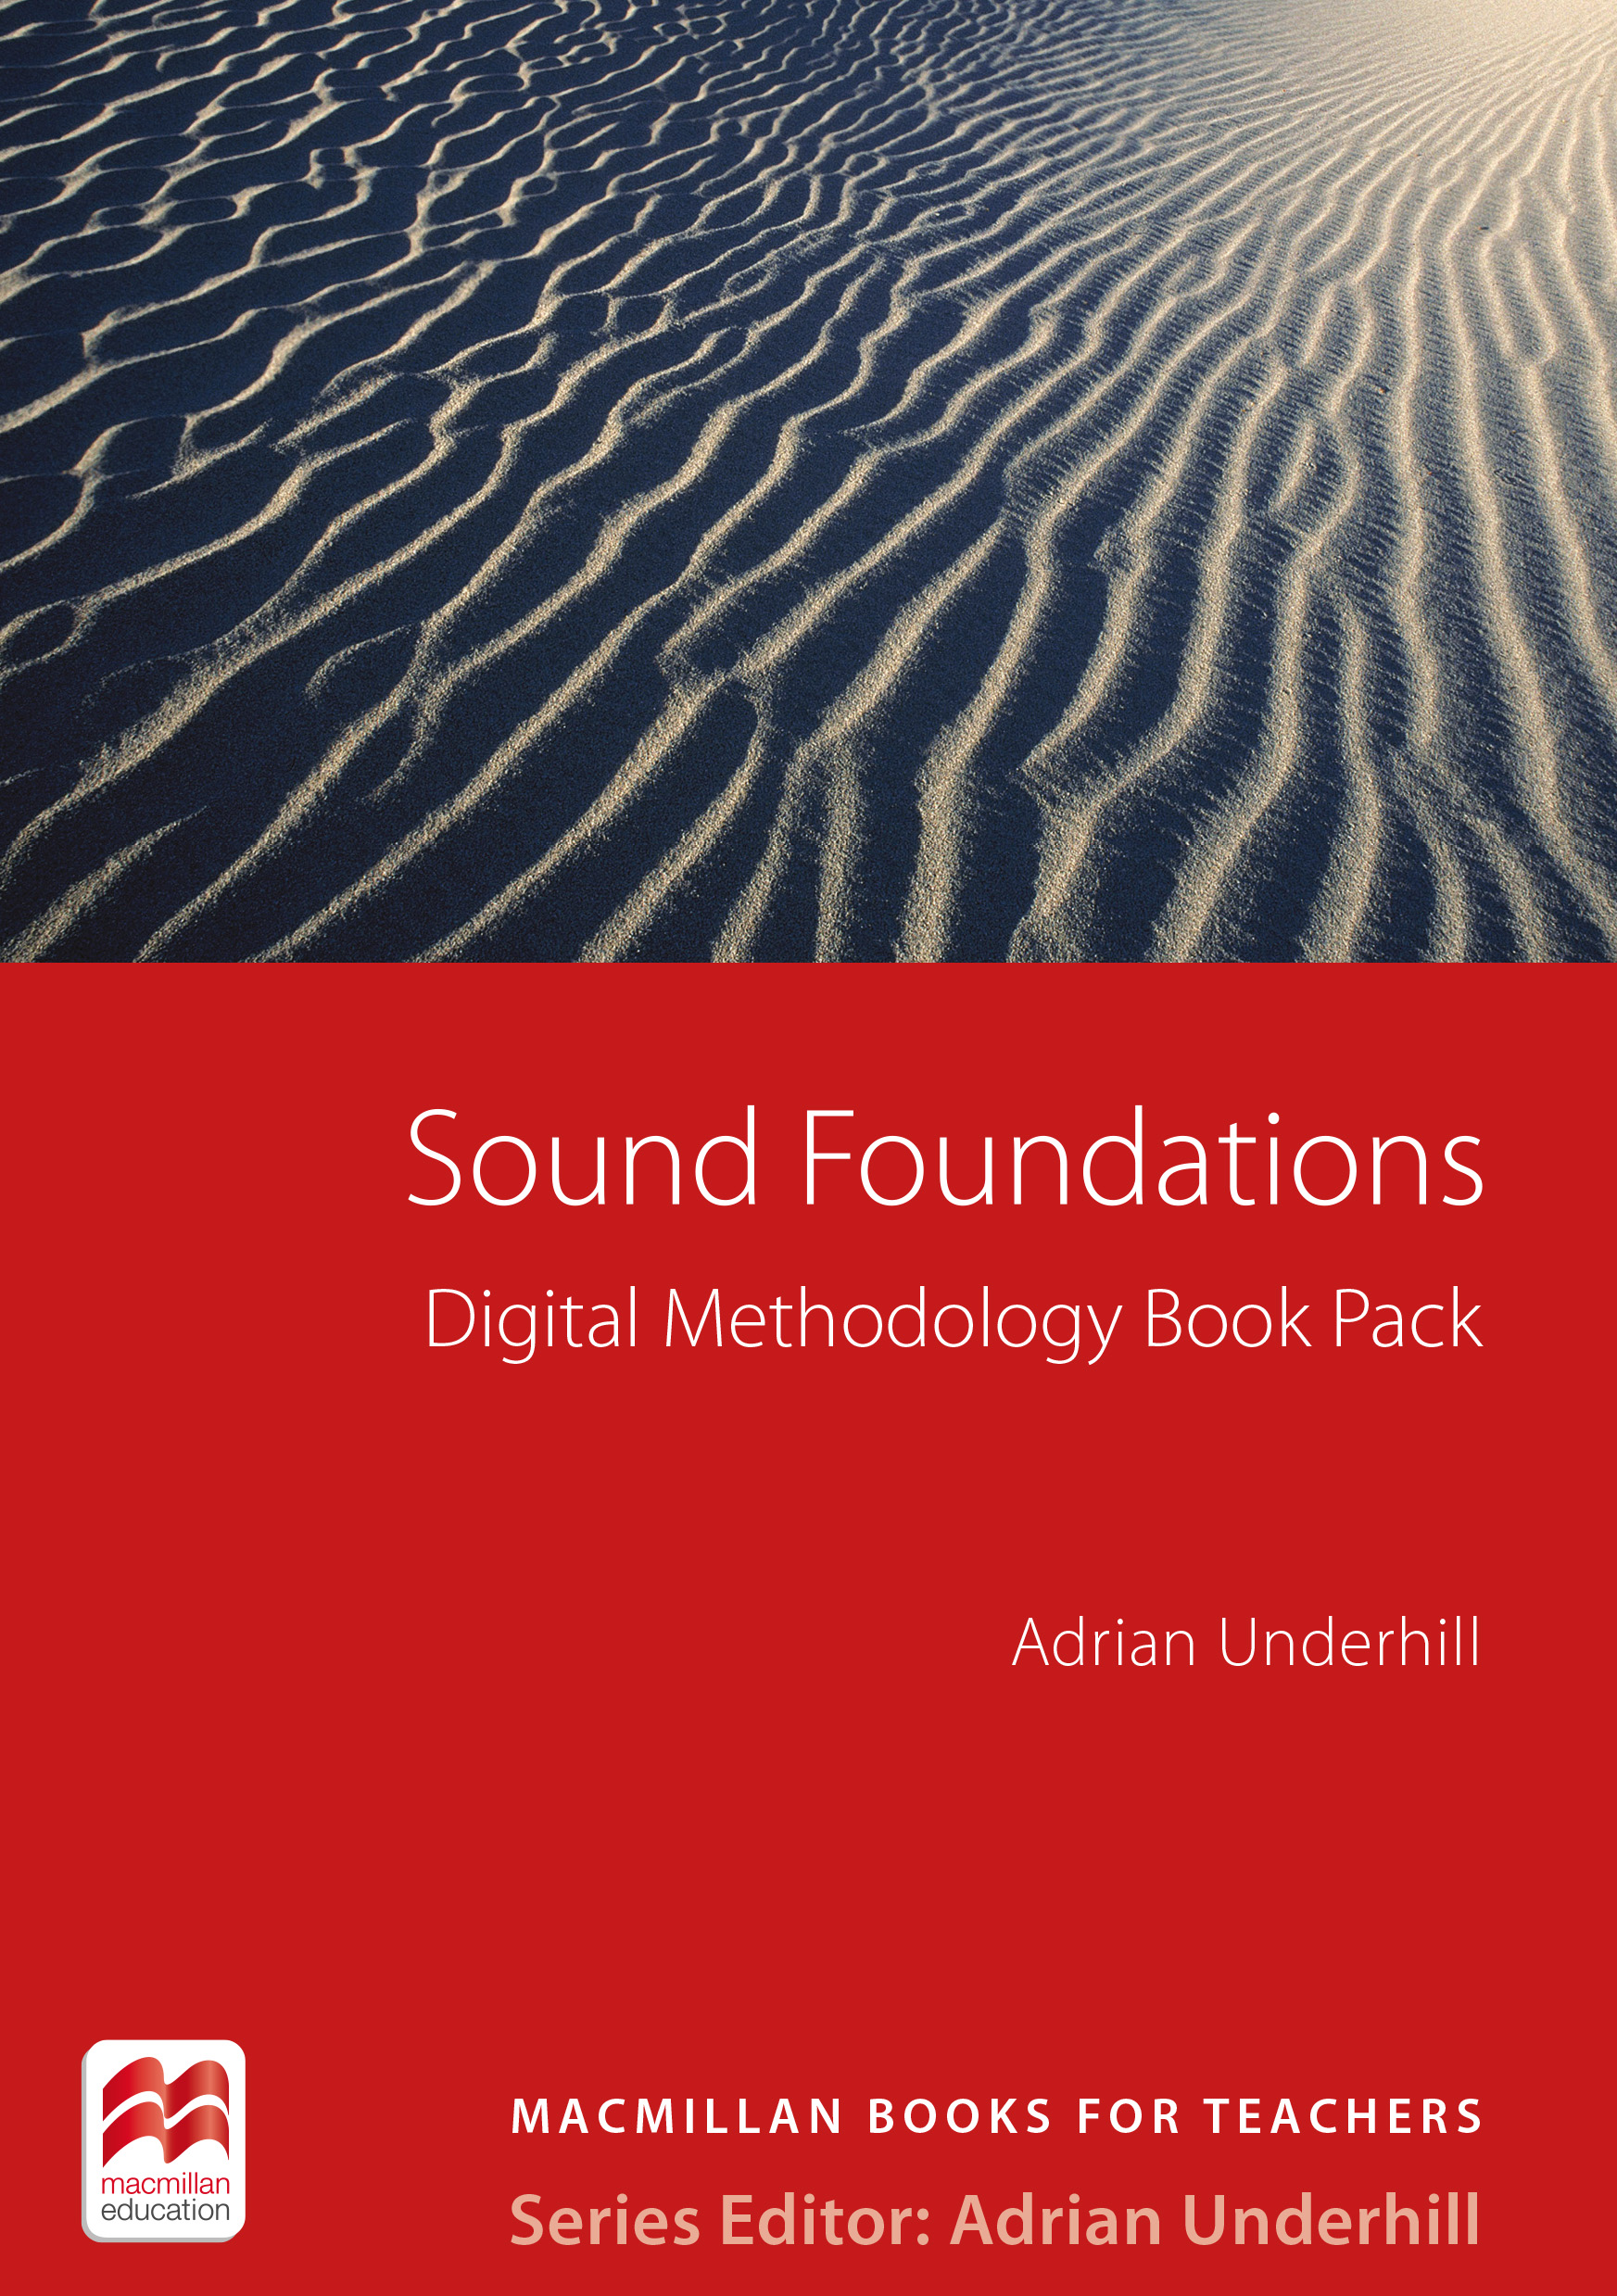 Sound Foundations New Edition Digital Methodology Book Pack - Access code card only